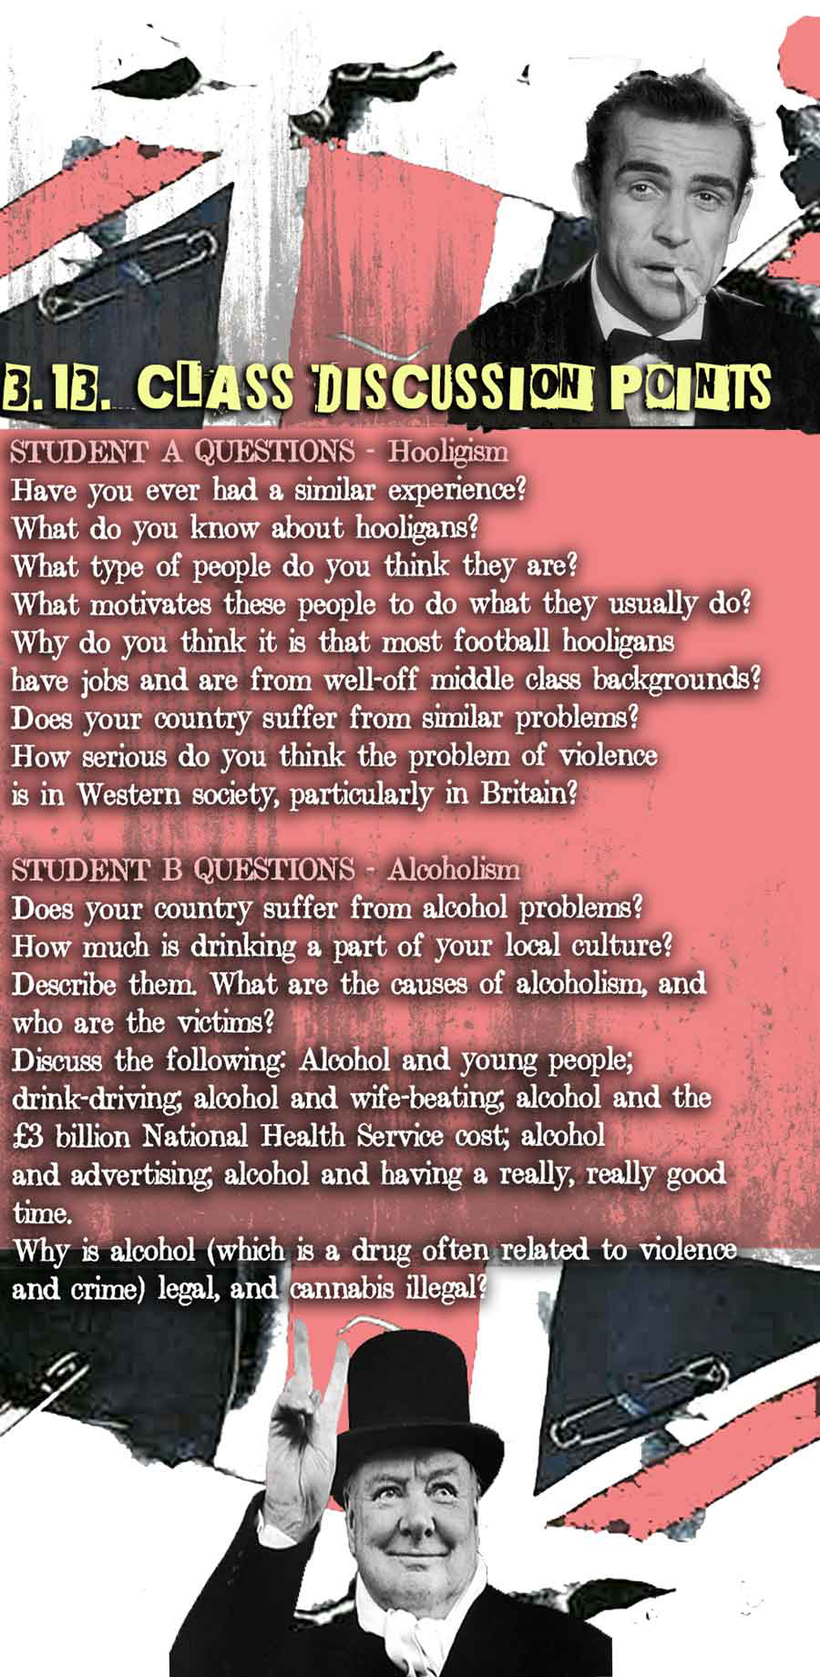 British language and culture infographic. Student discussions on hooliganism and alcoholism